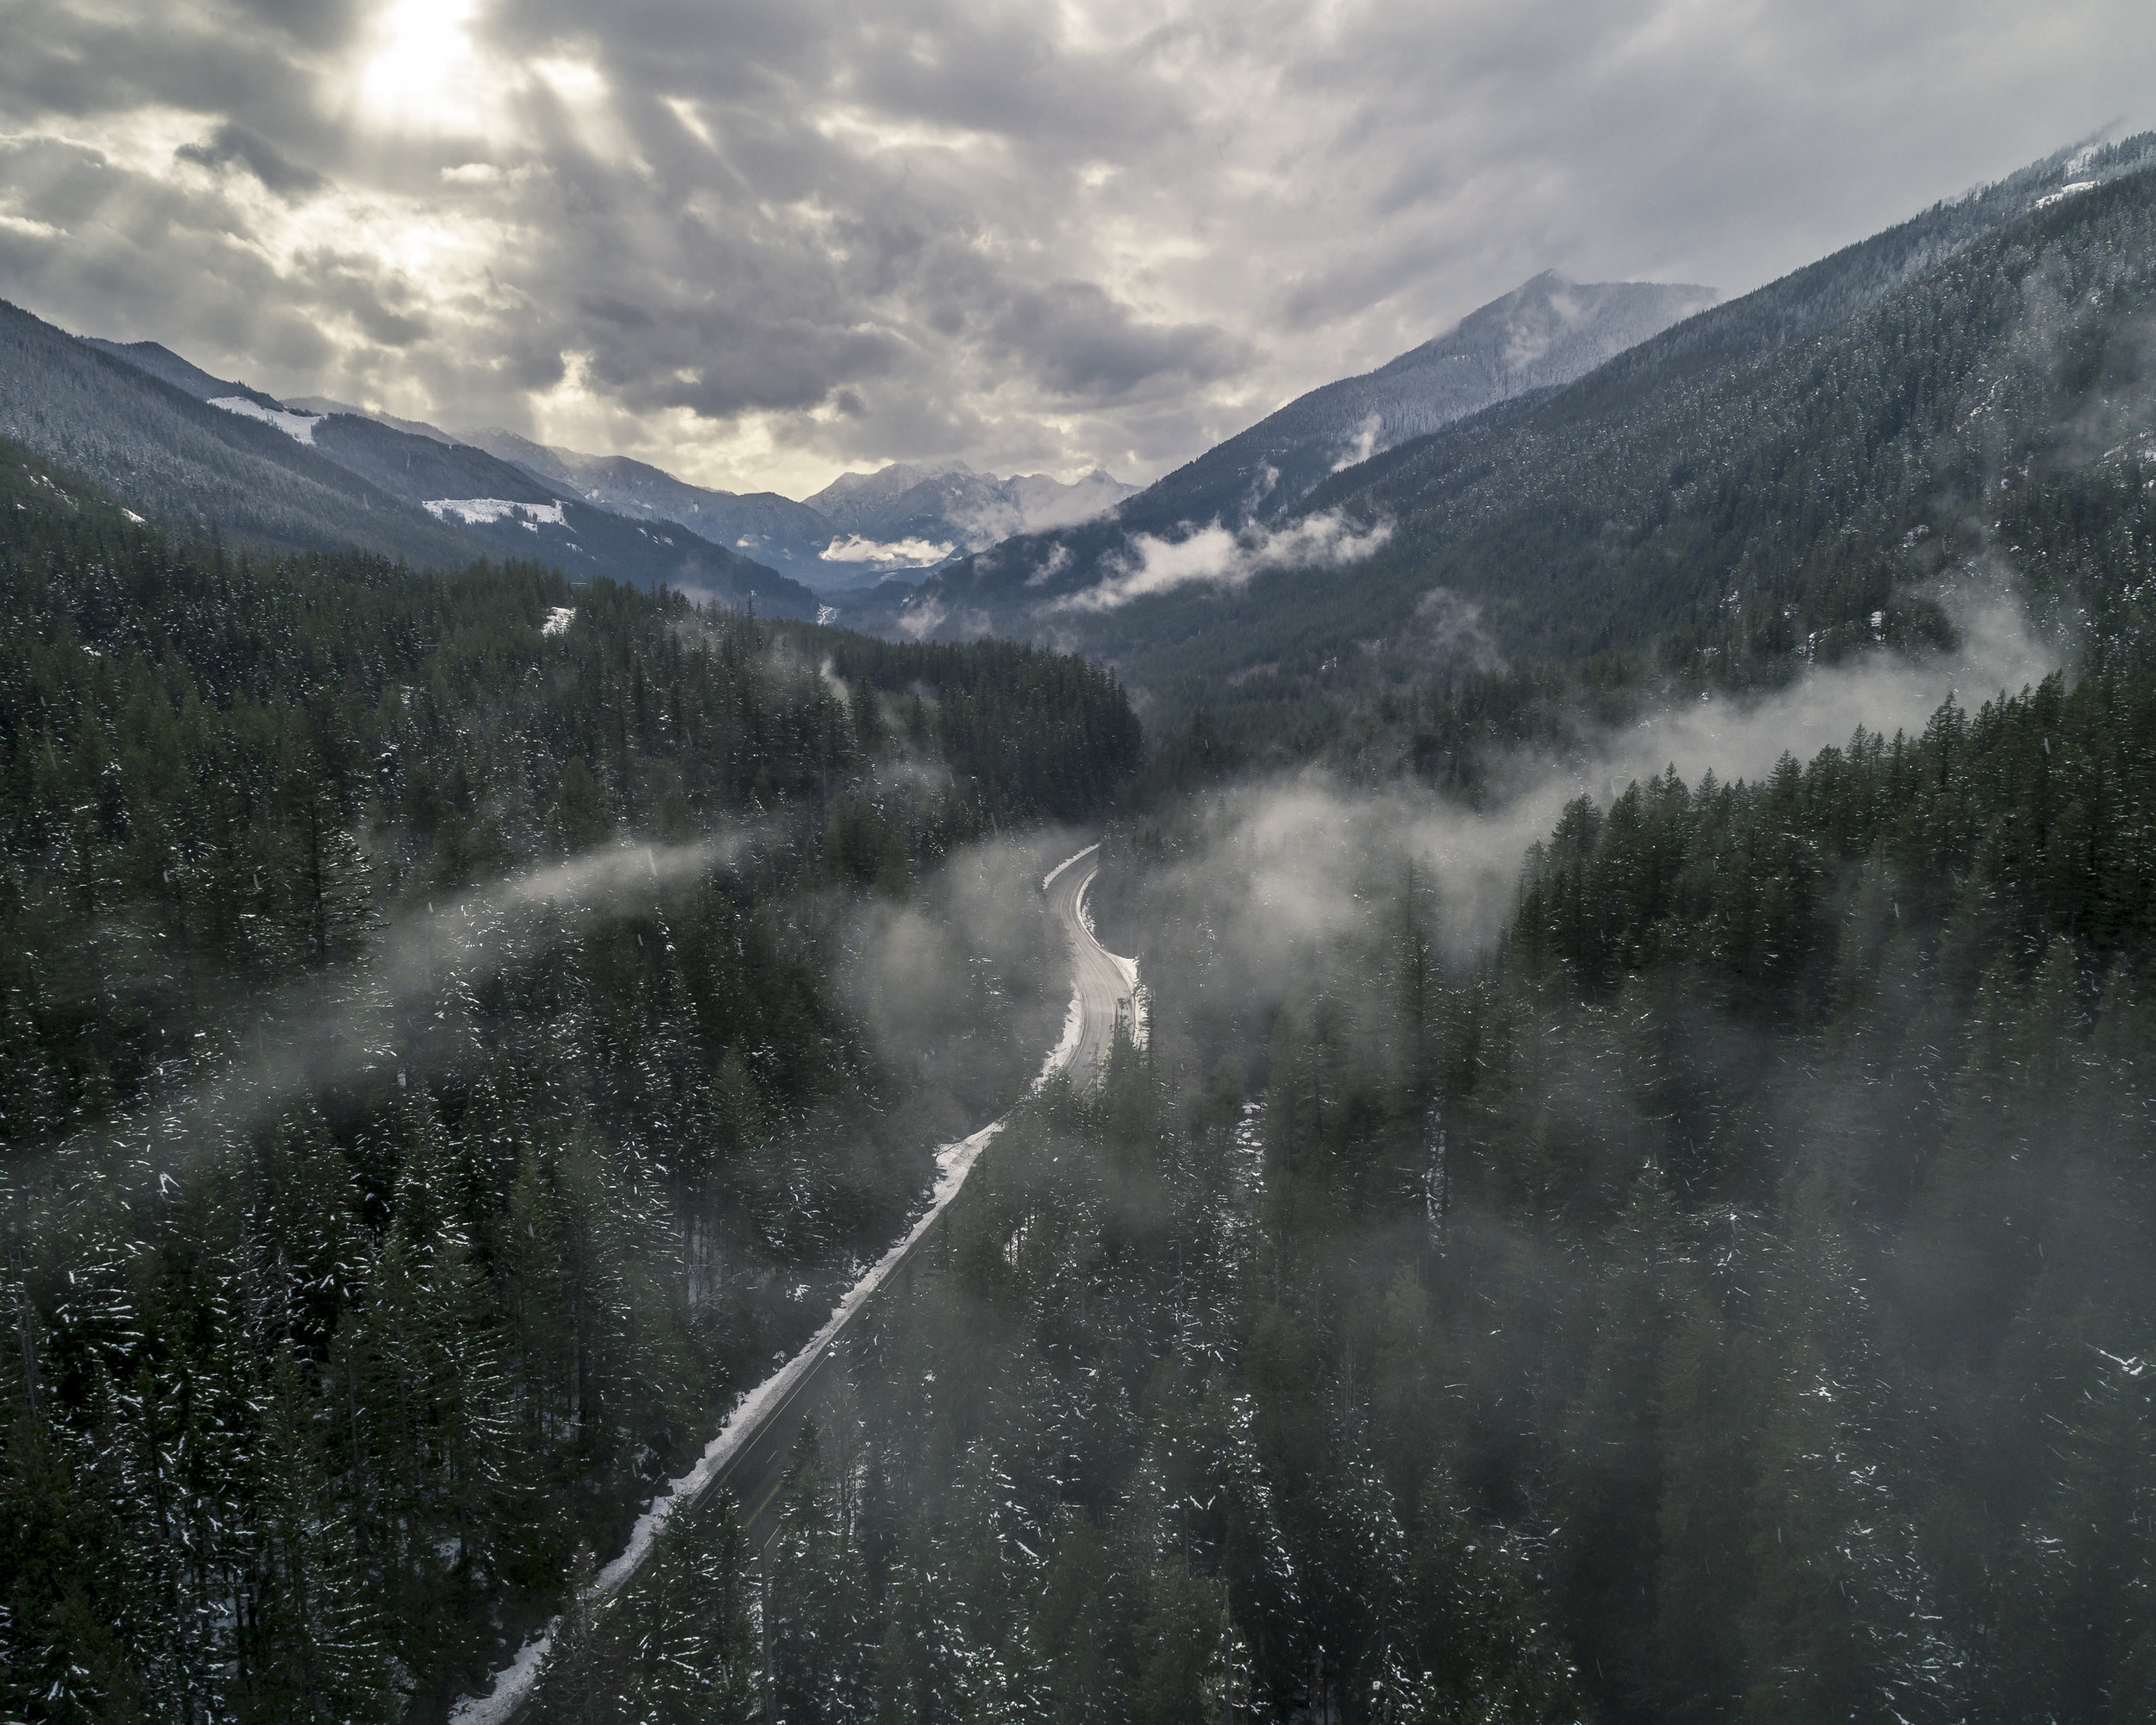 Road_to_Mountain_Wilderness_Pacific_Northwest_Aerial.jpg